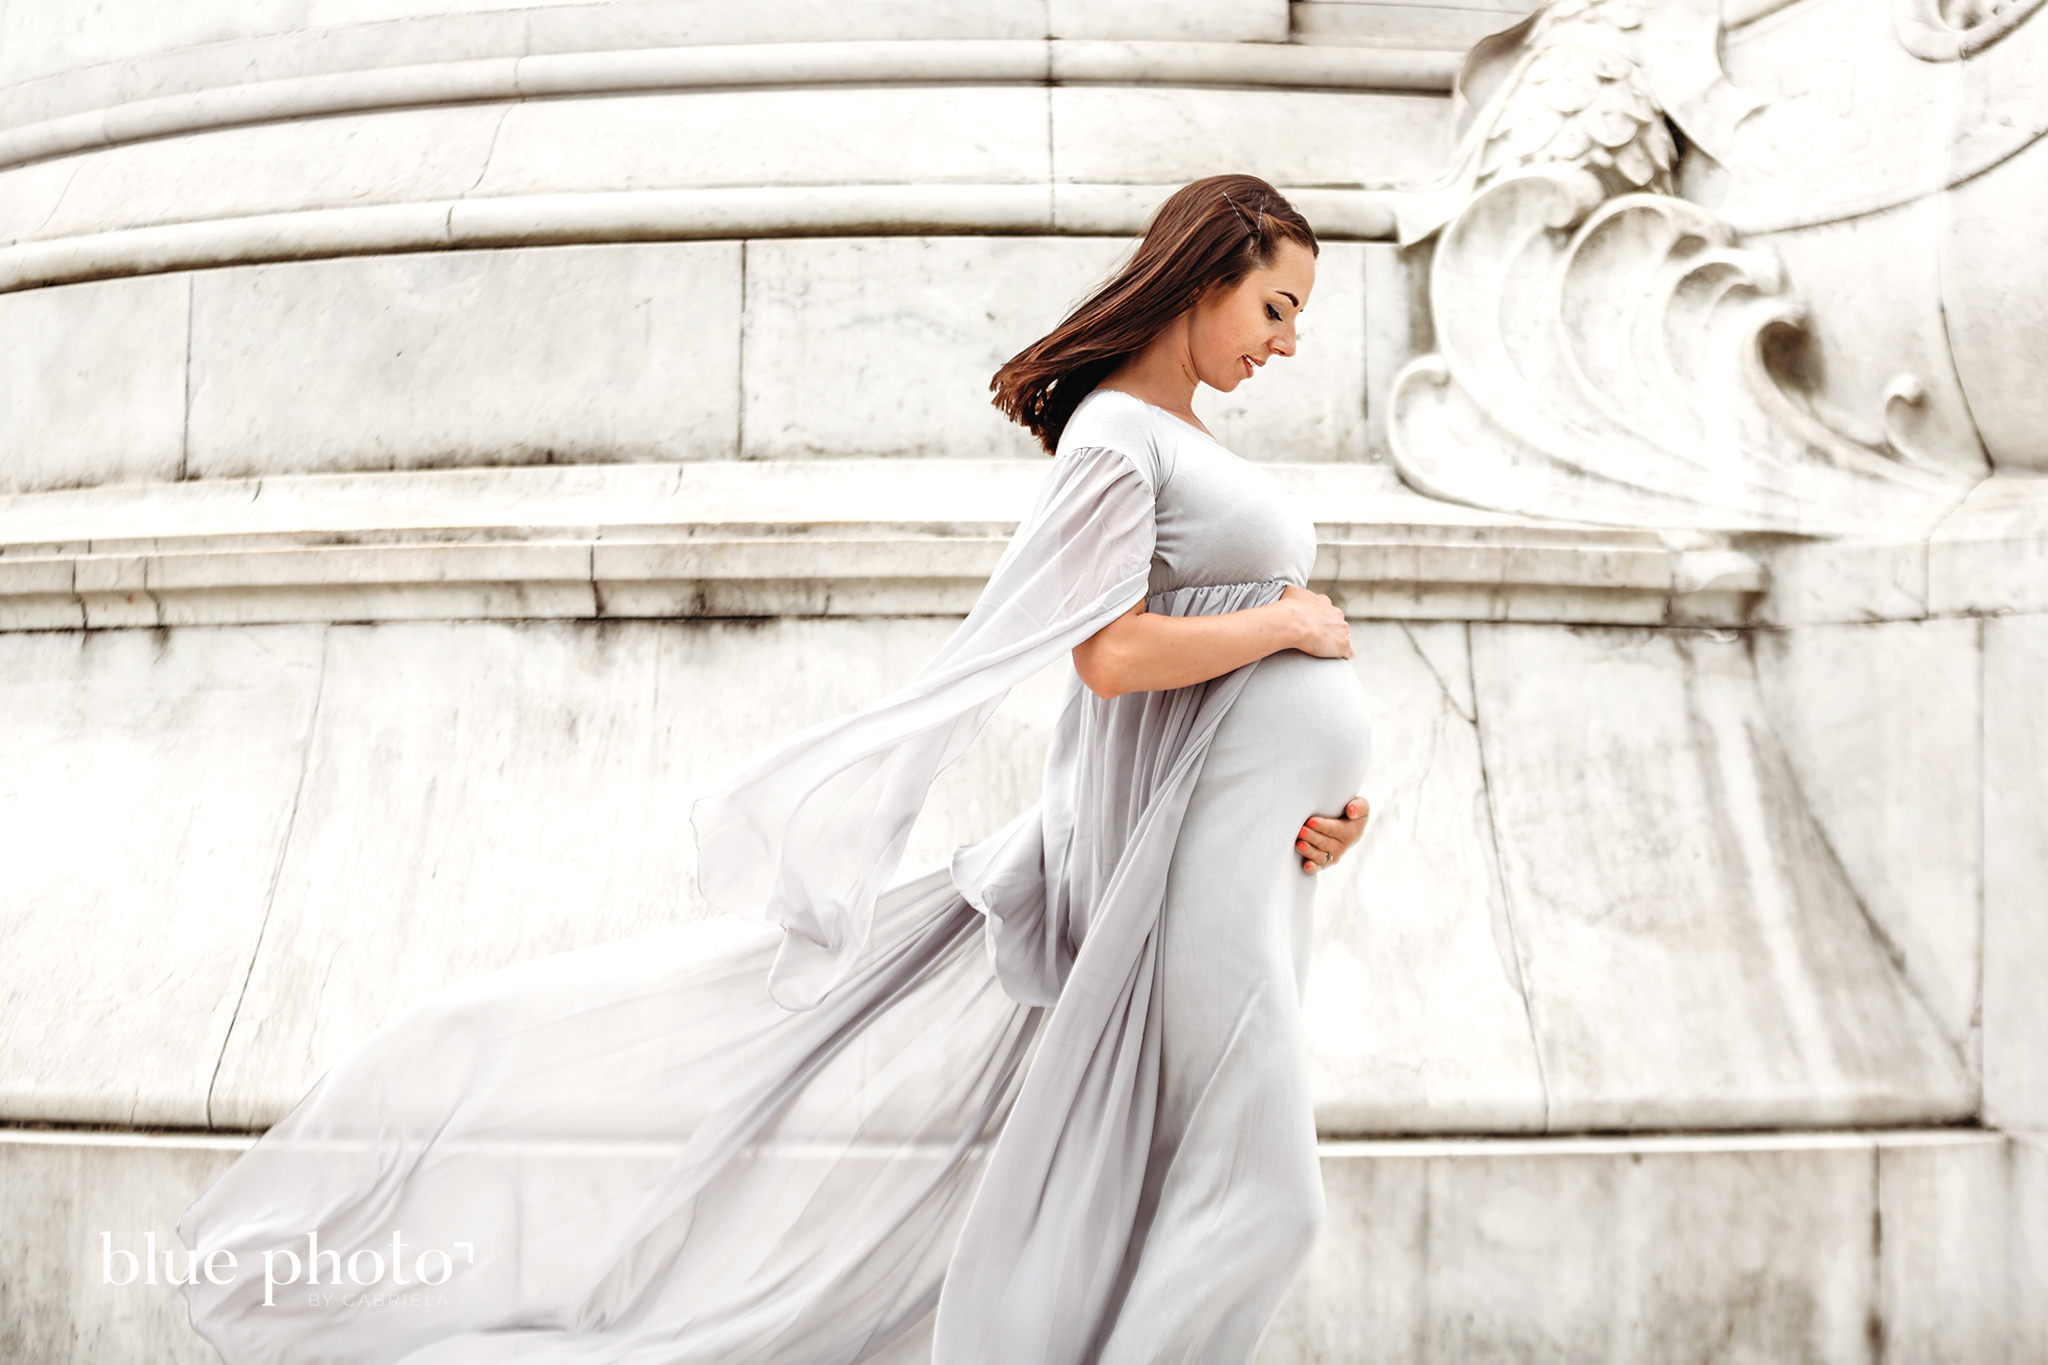 Joanna and her maternity session in Central London, at Buckingham Palace